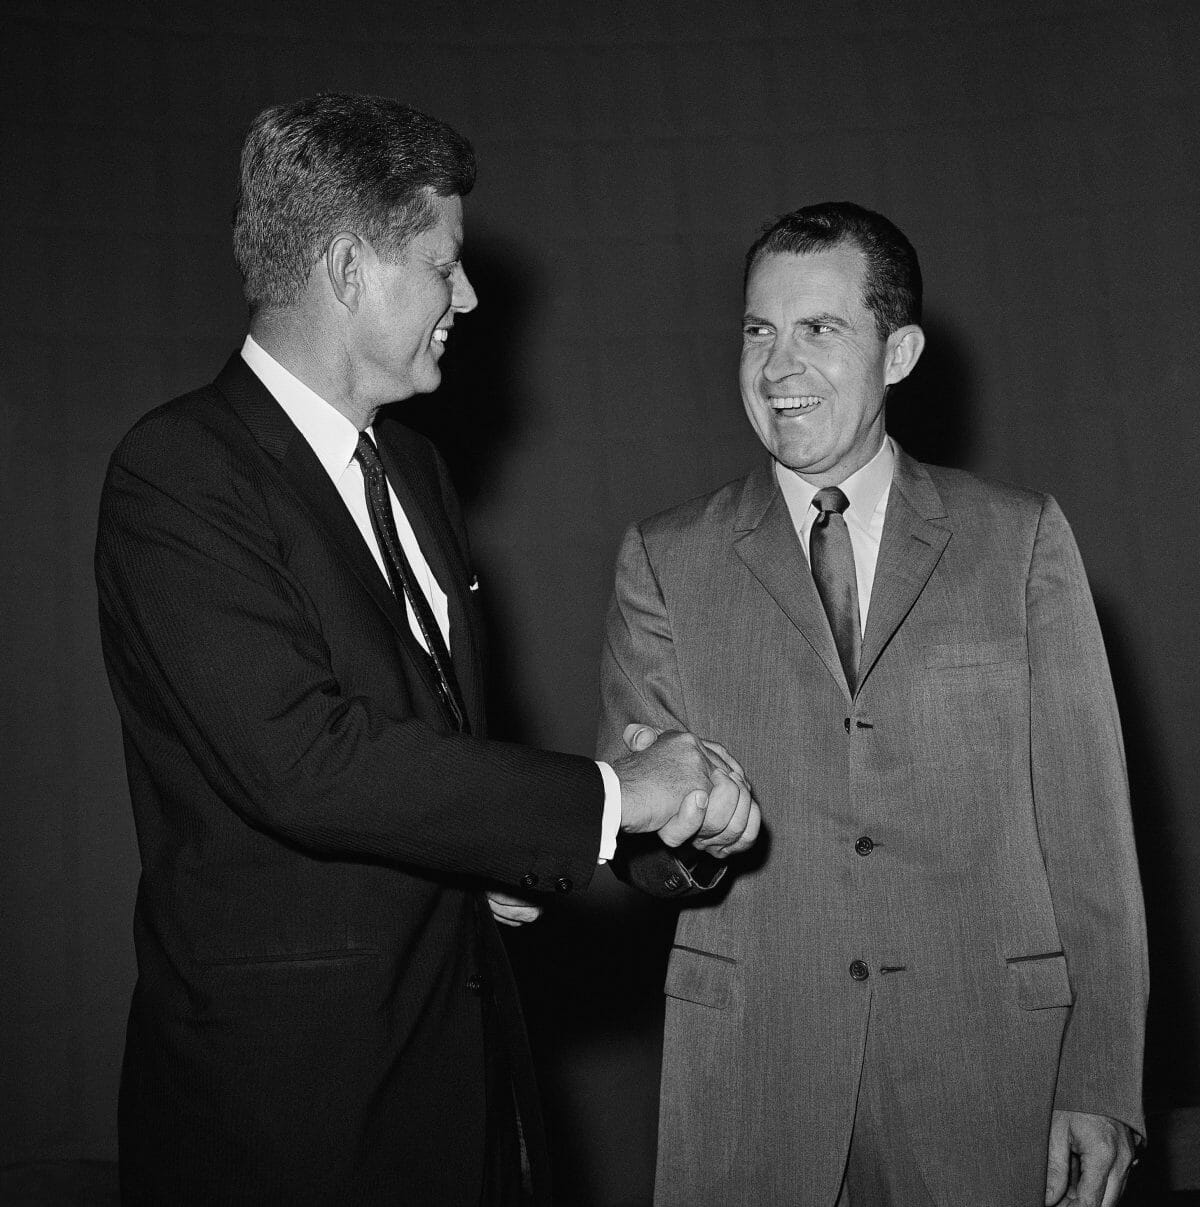 Presidential nominee Richard Nixon and Sen. John F. Kennedy shake hands, Sept. 26, 1960 in Chicago, as they hired television studio to take part in their debate. (AP Photo)